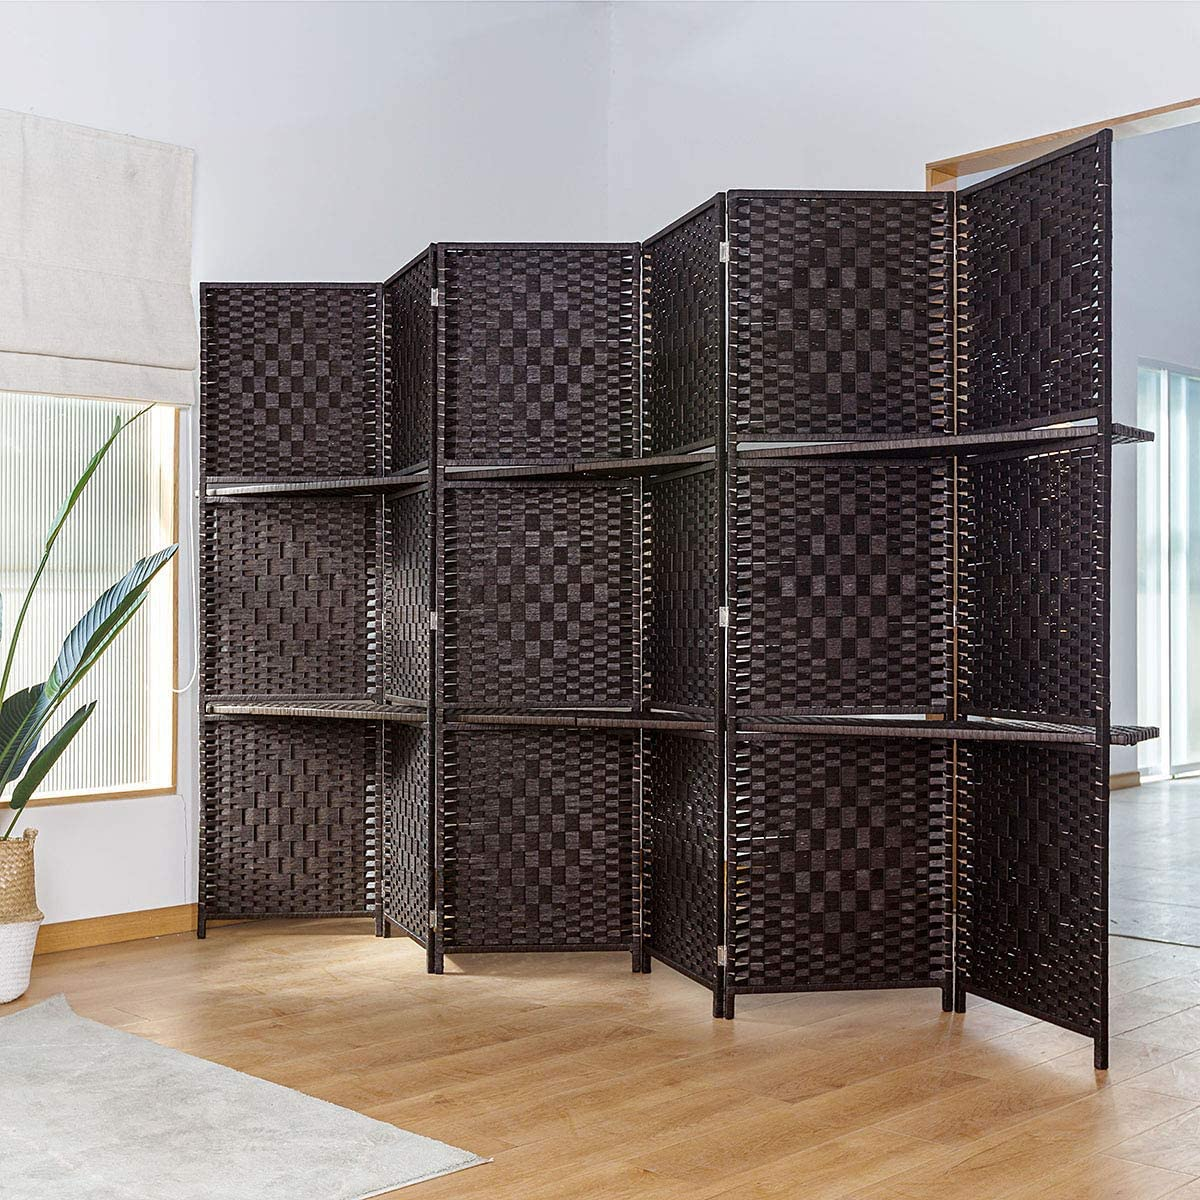 TinyTimes 6 FT Tall Room Divider with Removable Storage Shelves, 6 Panel Weave Fiber Extra Wide Room Divider, Room Dividers & Folding Screens, Freestanding - Dark Brown, 6 Panel